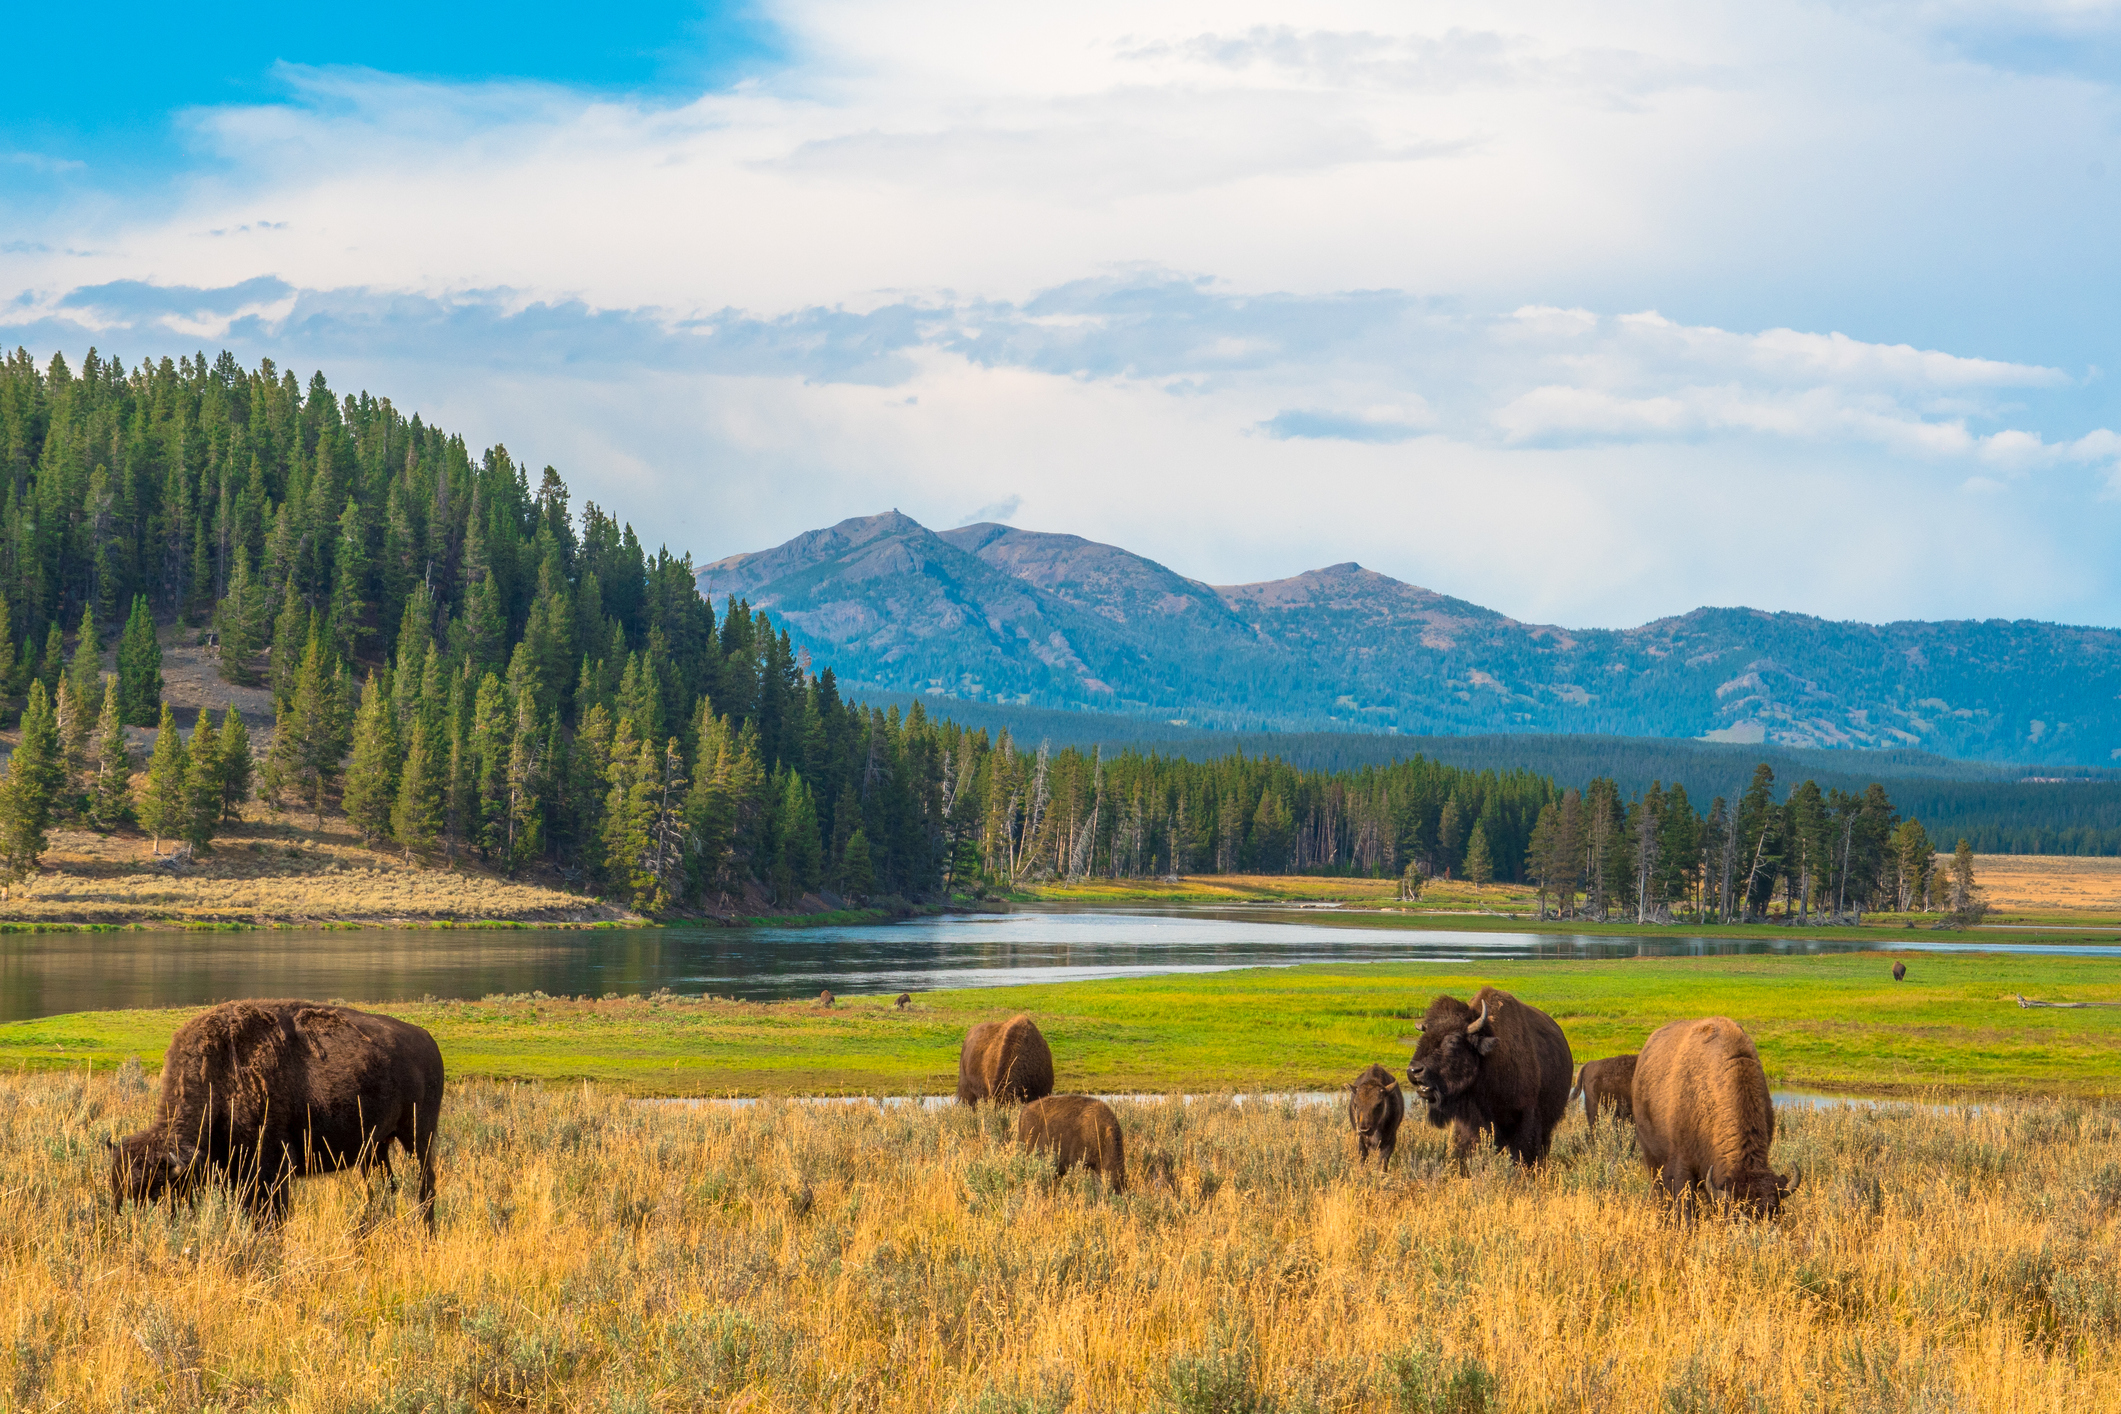 Western Wyoming itinerary —Buffalos graze on a grass meadow as forested mountains loom in distance.